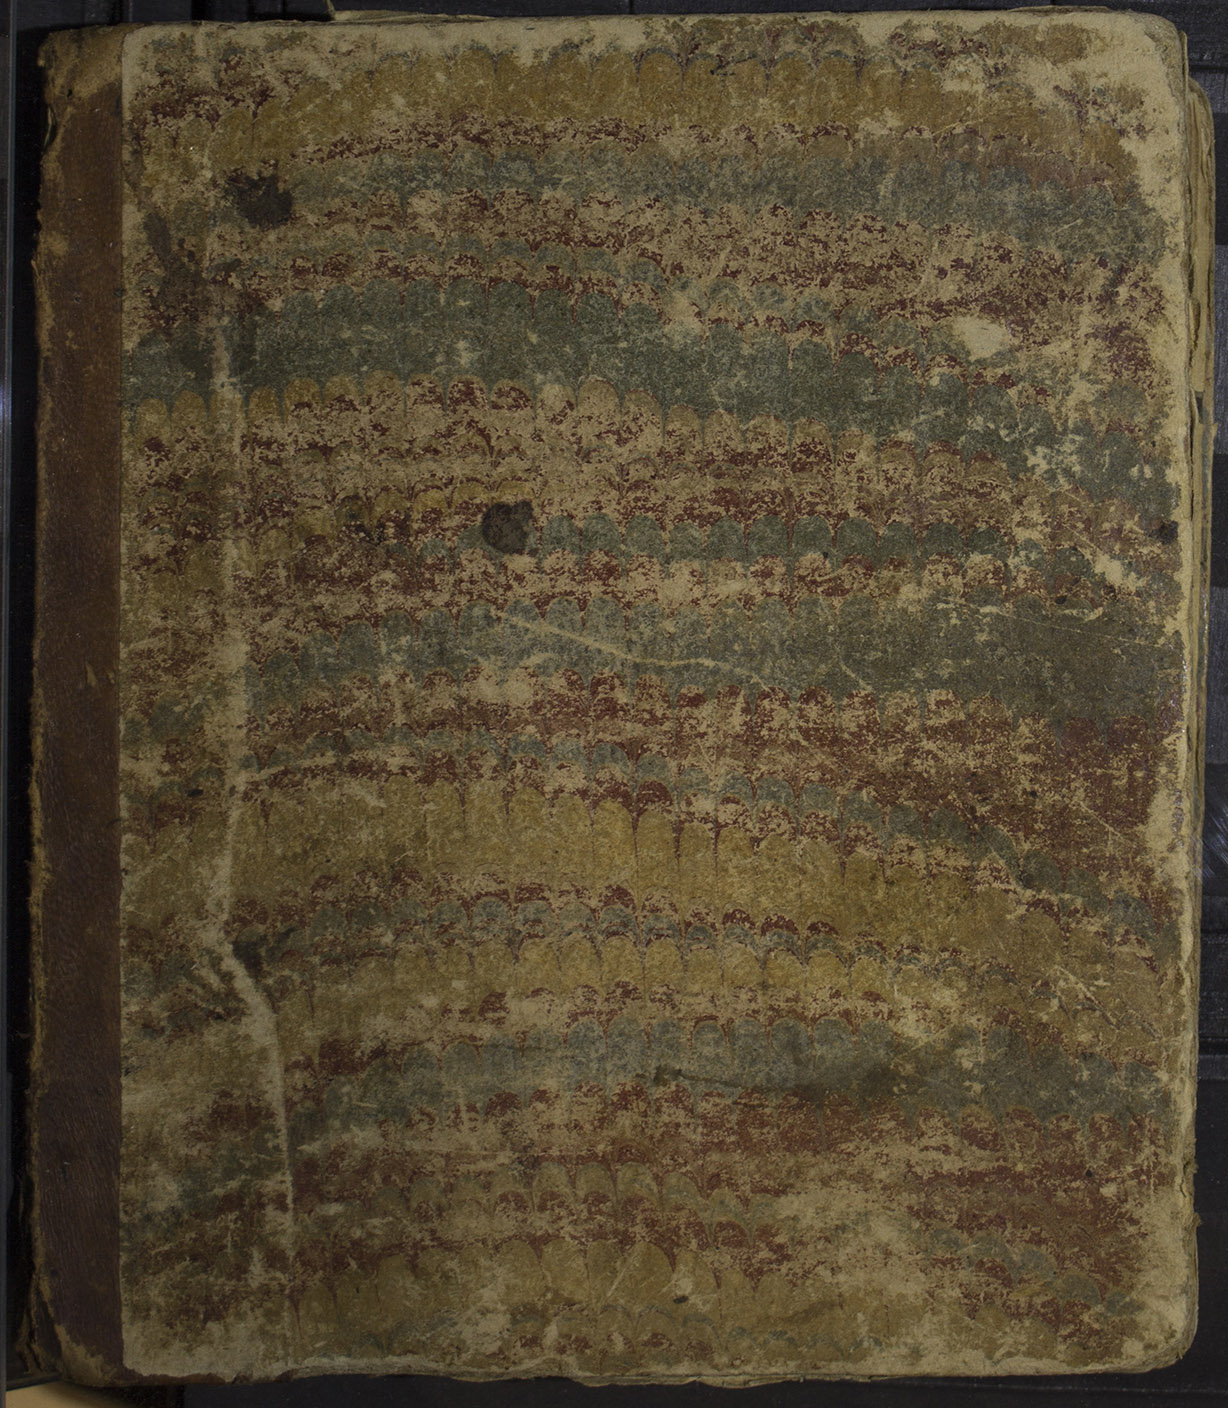 Depiction of Front cover of the Maynard volume